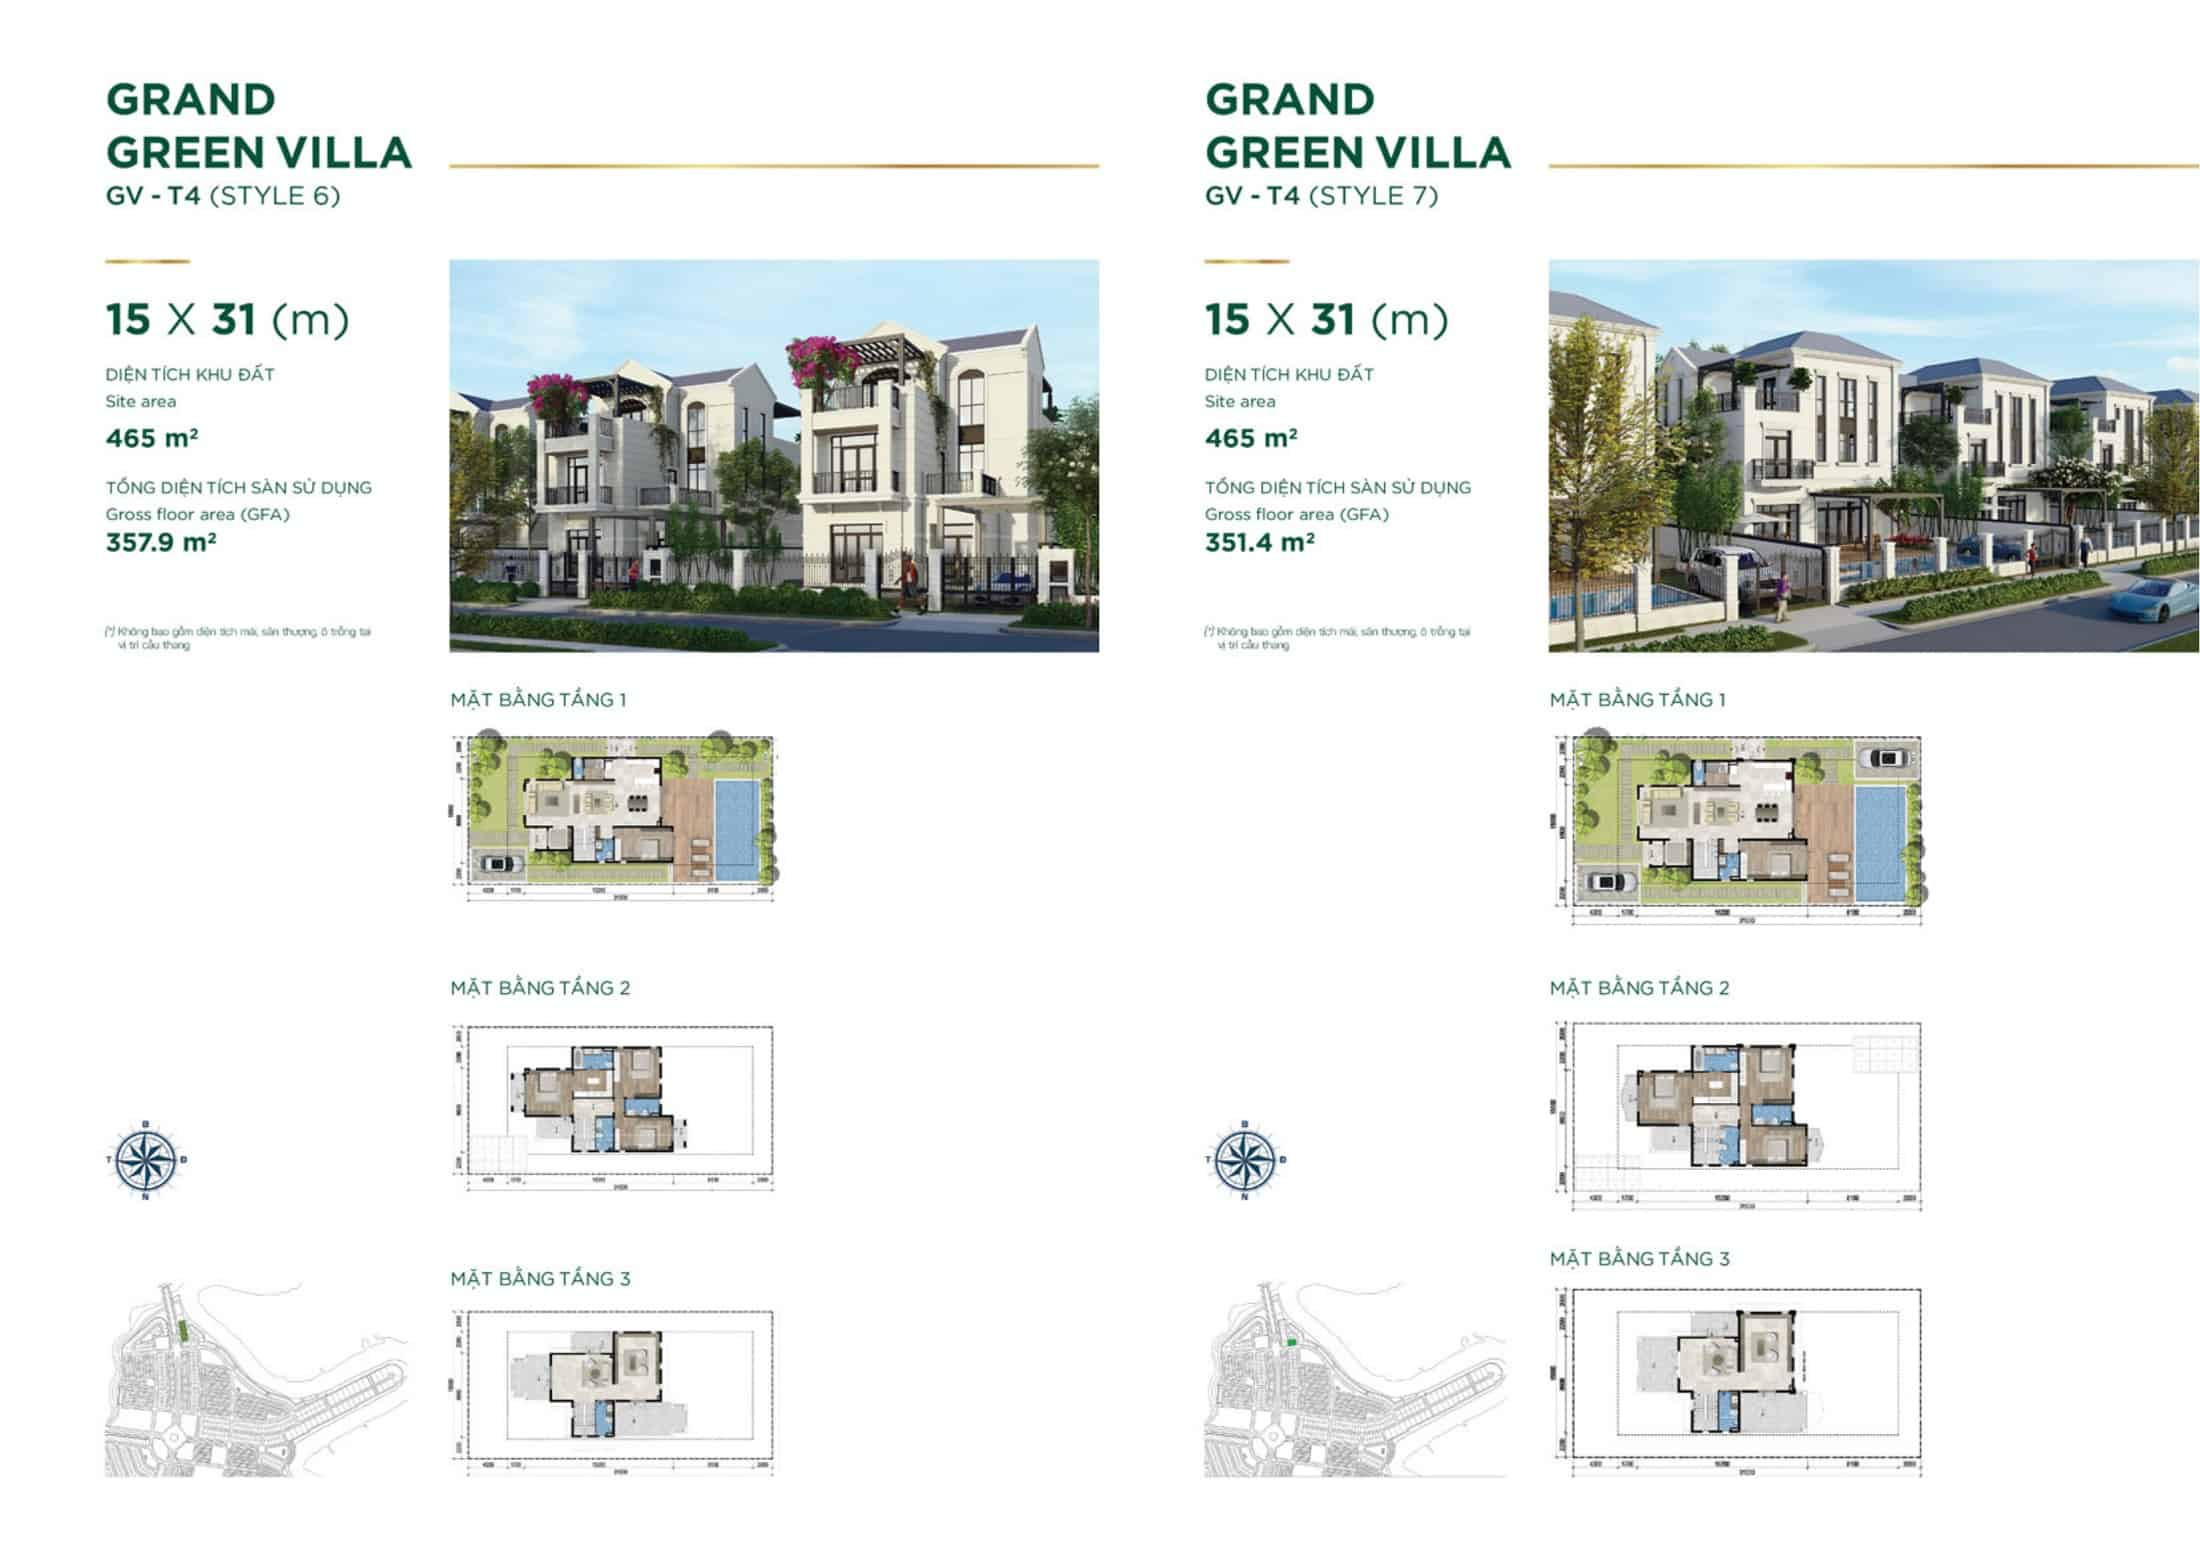 biet-thu-grand-green-villa-15x31-the-stella